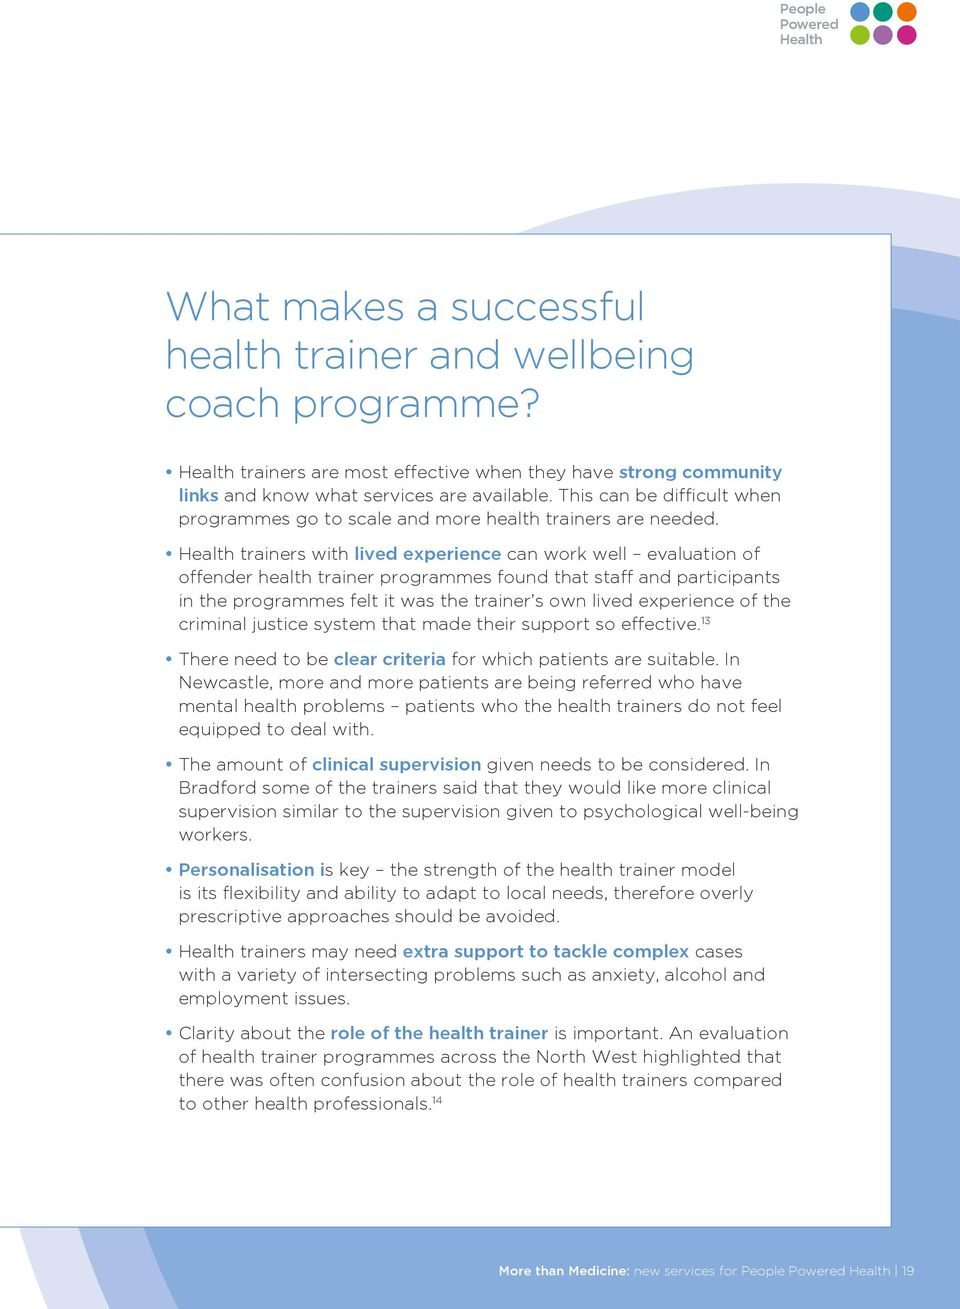 trainers with lived experience can work well evaluation of offender health trainer programmes found that staff and participants in the programmes felt it was the trainer s own lived experience of the